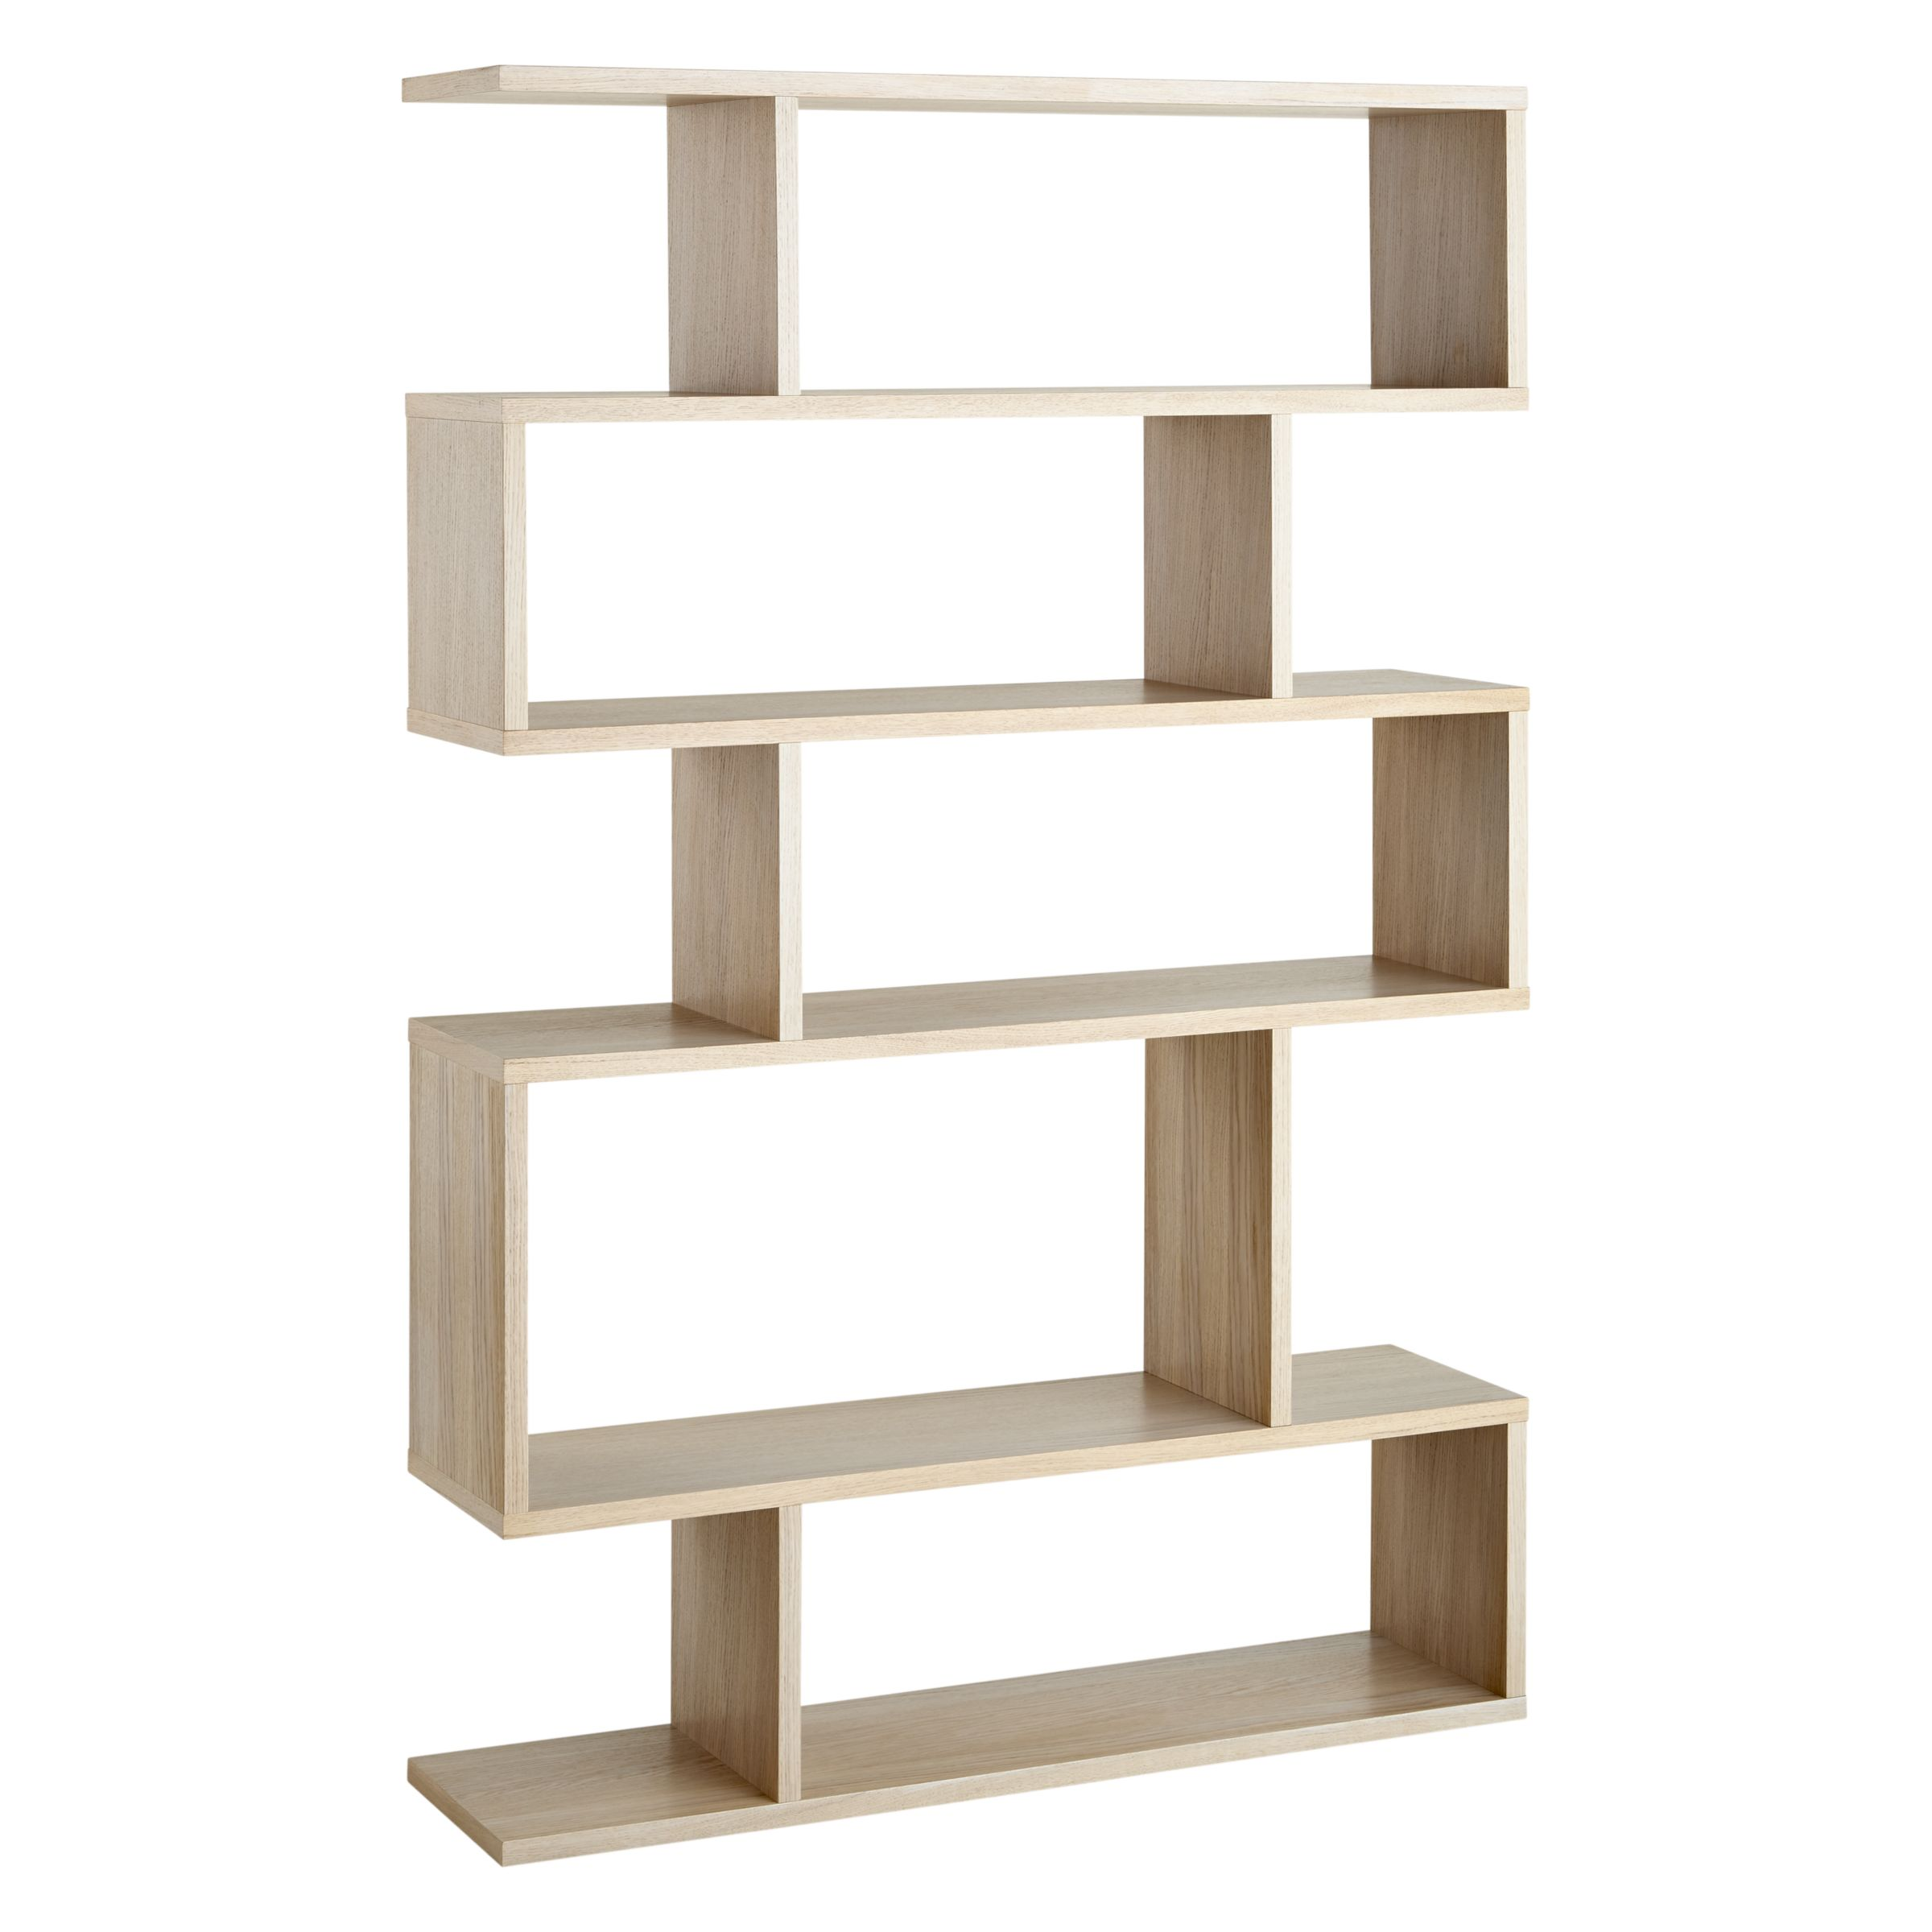 unit oak surface storage products made wood ikea from en natural white height bookcase bookcases billy stained gb furniture veneer shelf extension with